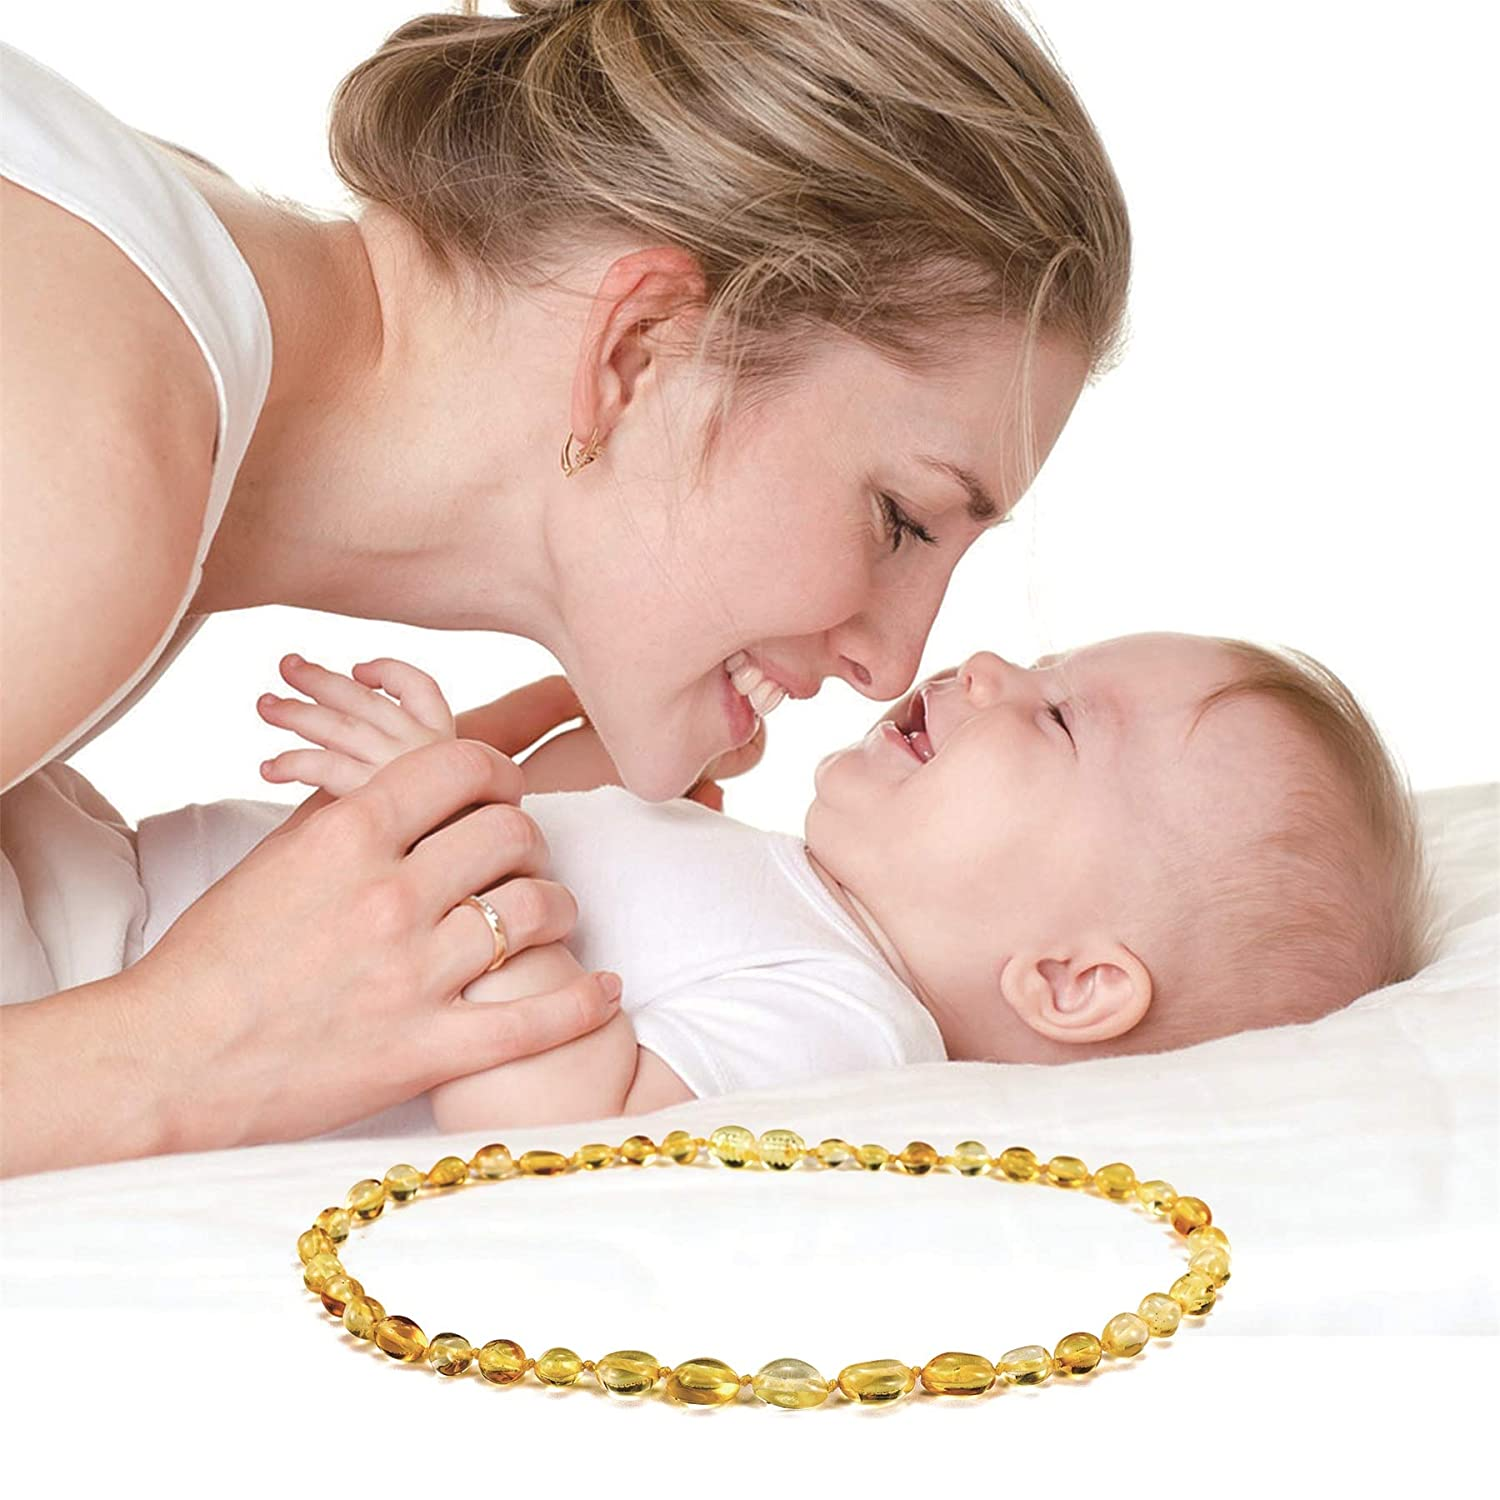 100/% Natural Certificated Oval Baltic Jewelry /… Unisex Drooling /& Teething Pain Reducing Propertie - Lateefah Raw Baltic Amber Teething Necklace